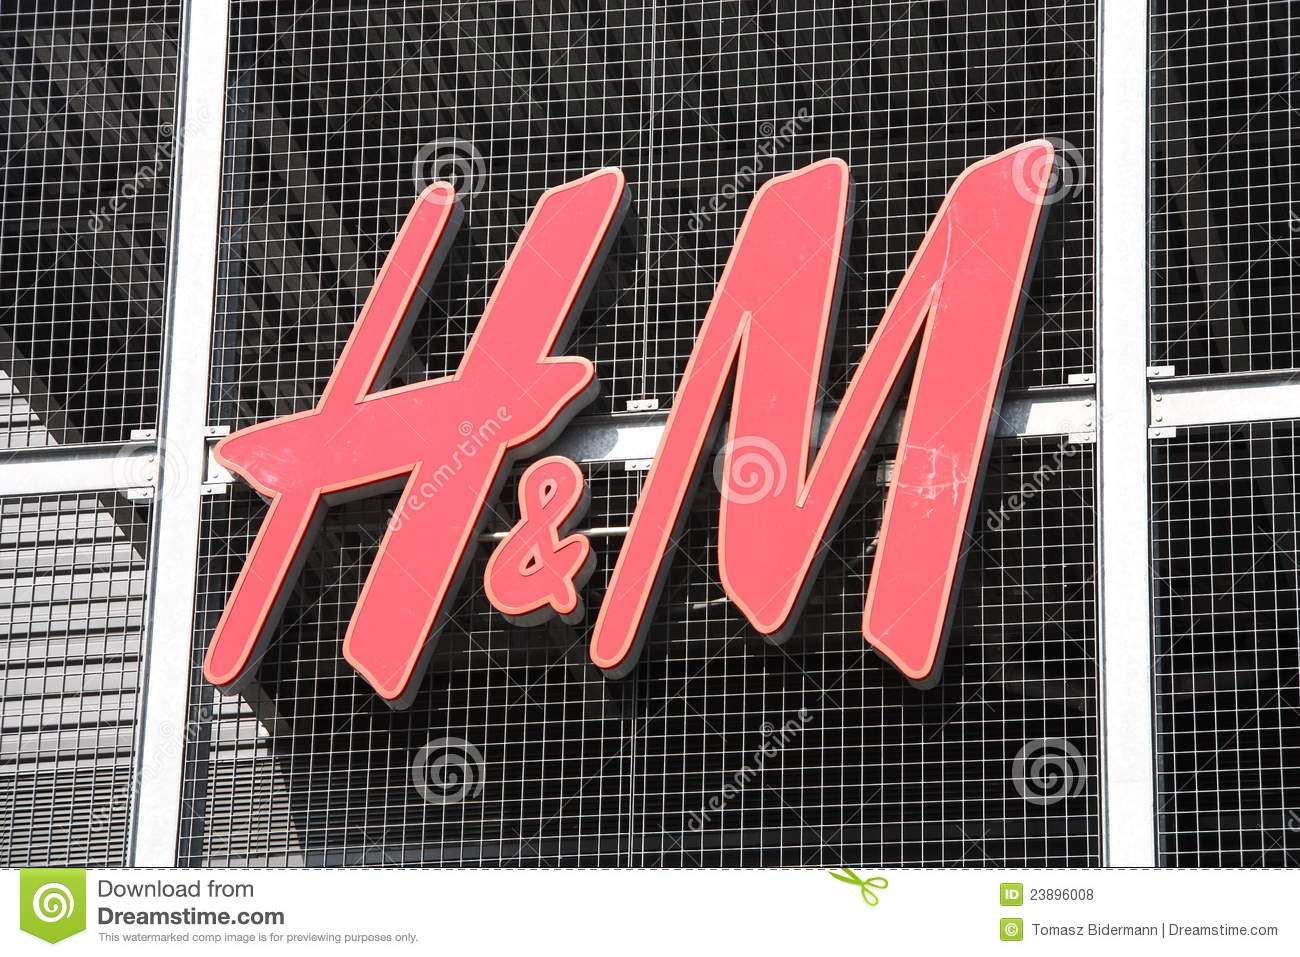 H&M Clothing Store History Webpage - About H&M